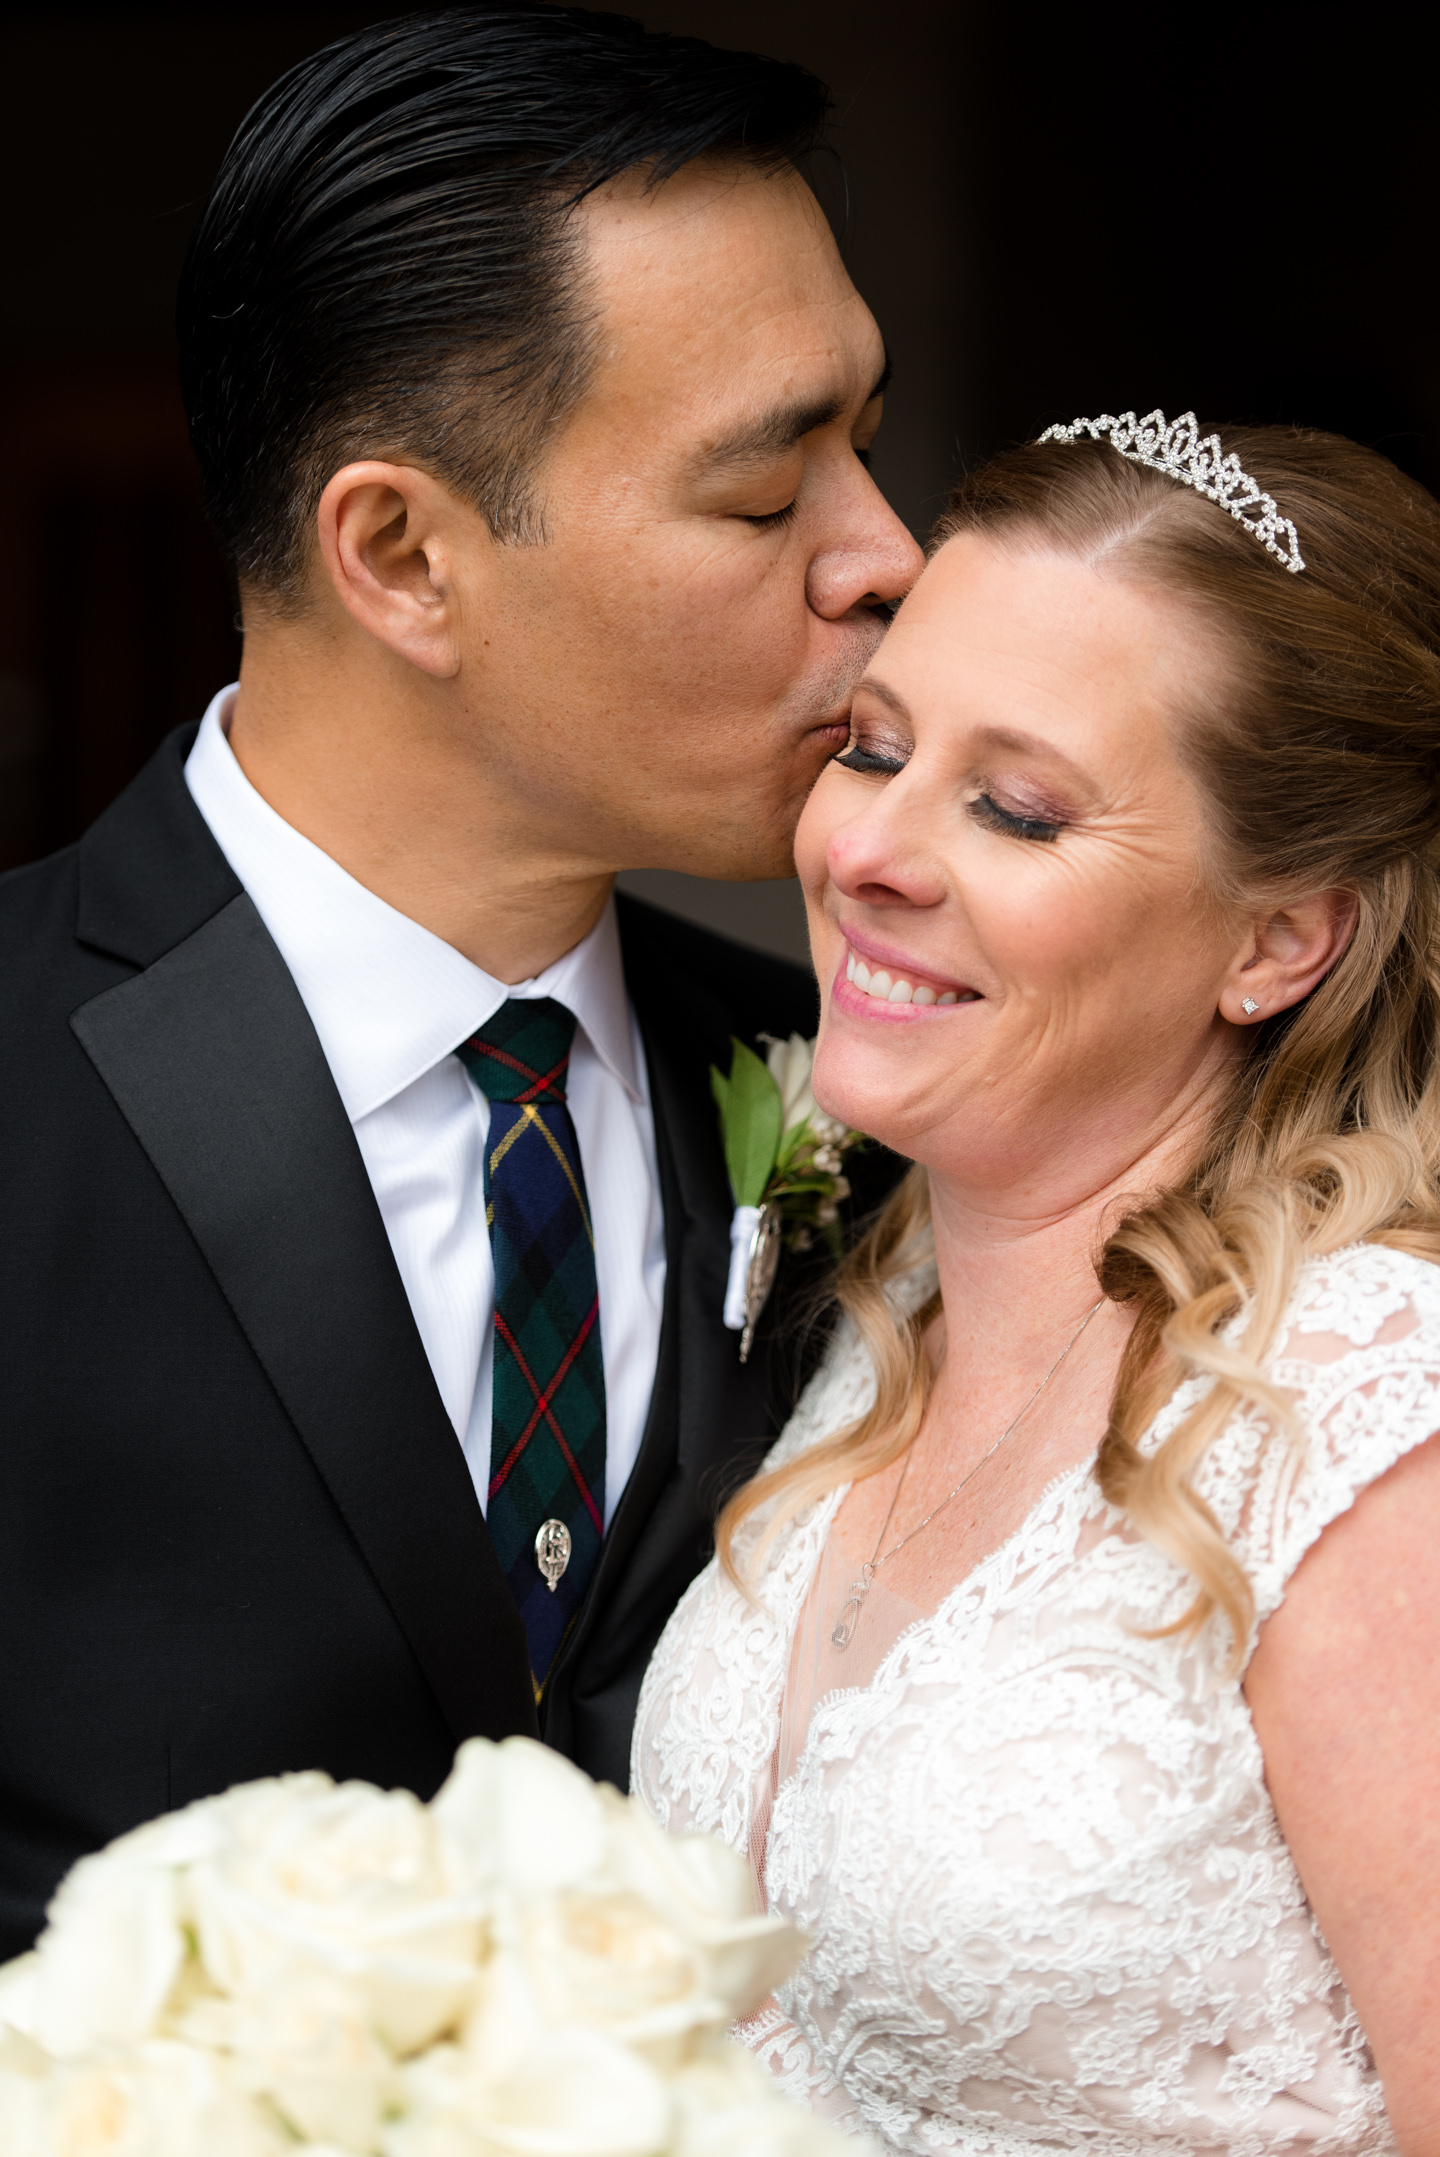 Bride and Asian Groom Wedding Portrait